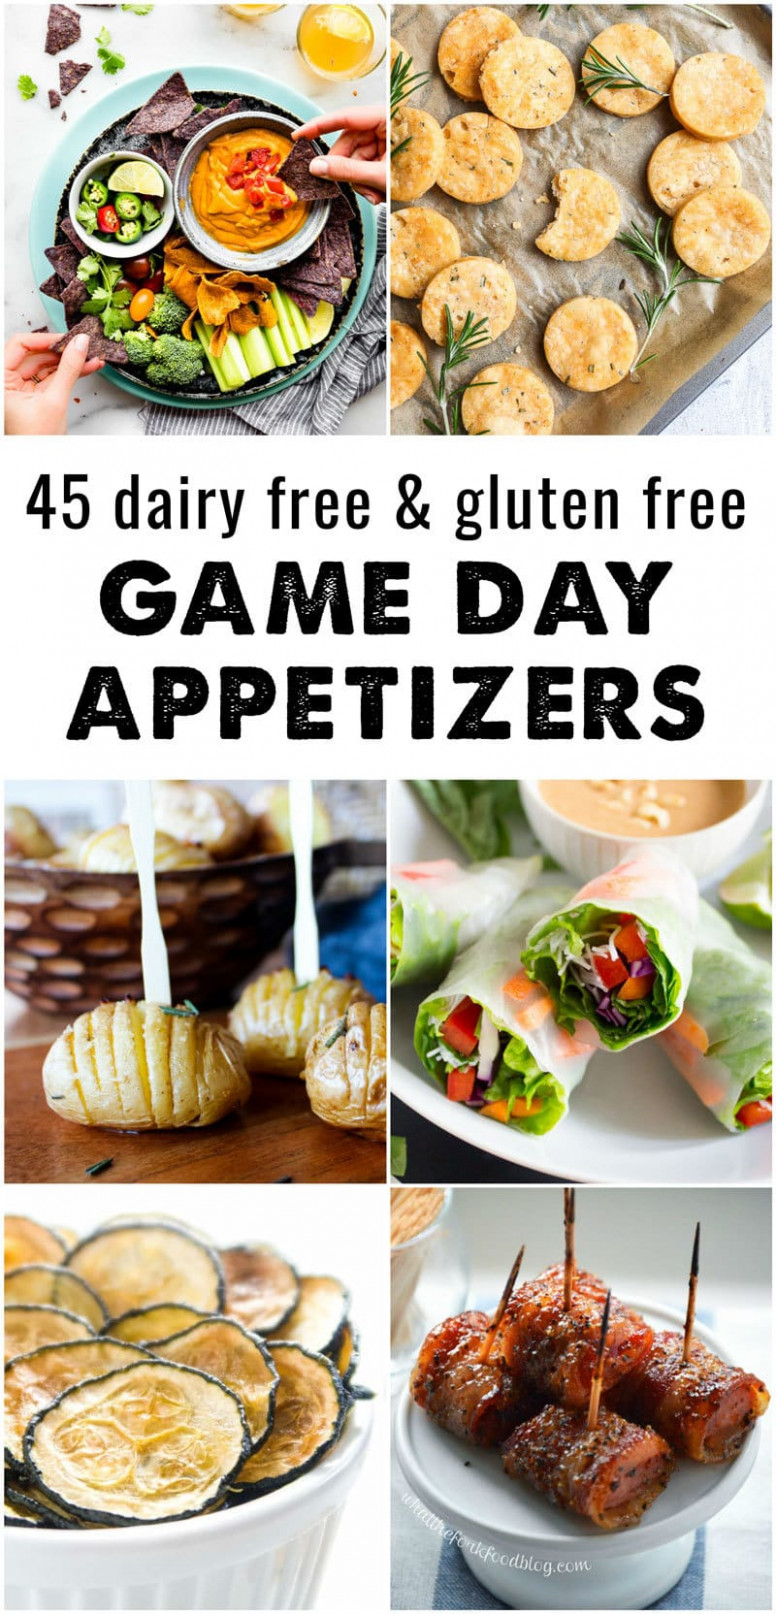 10 Dairy Free And Gluten Free Appetizers • The Fit Cookie - Dinner Recipes Gluten And Dairy Free